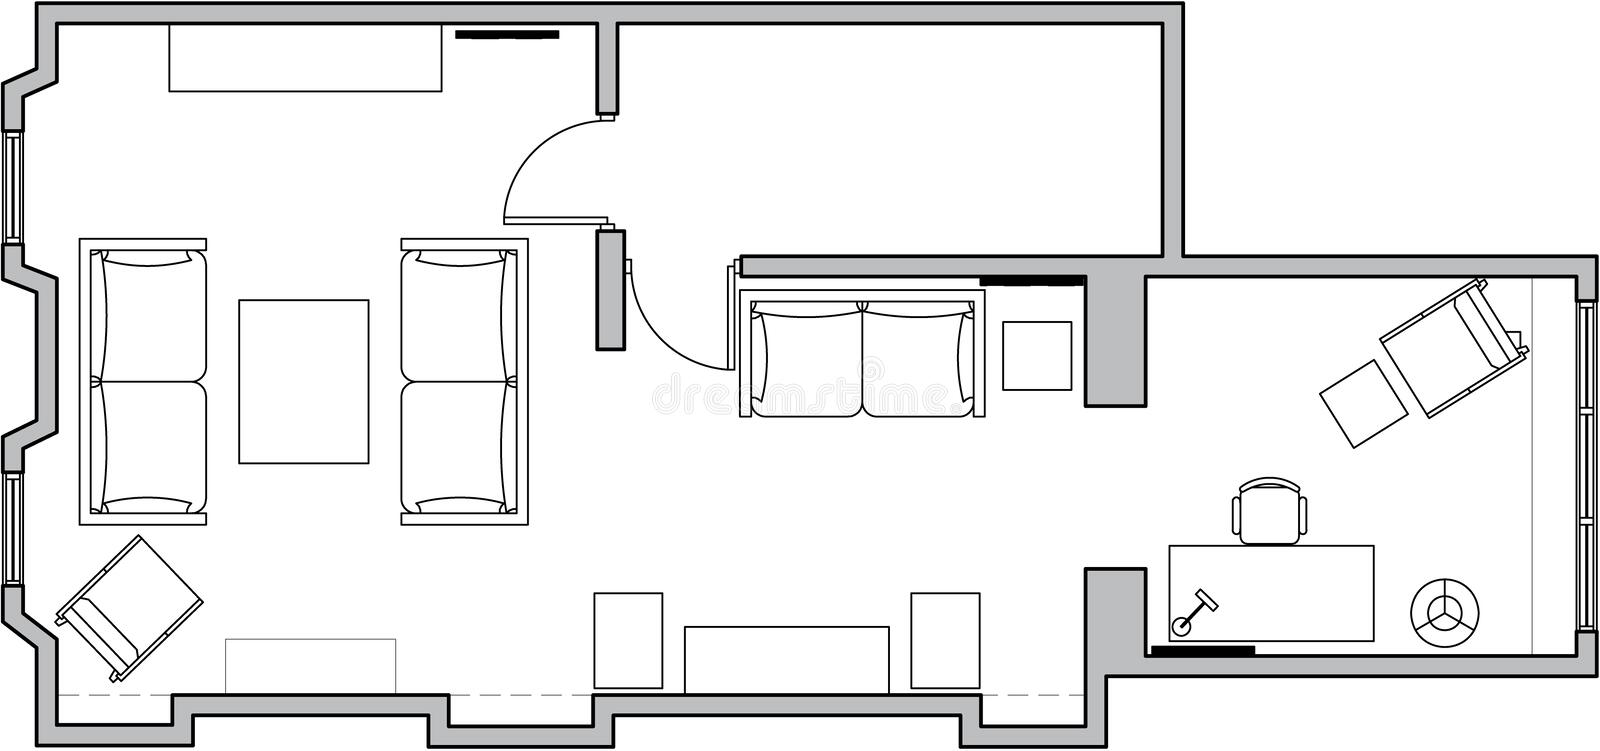 Architecture floor plan vector illustration